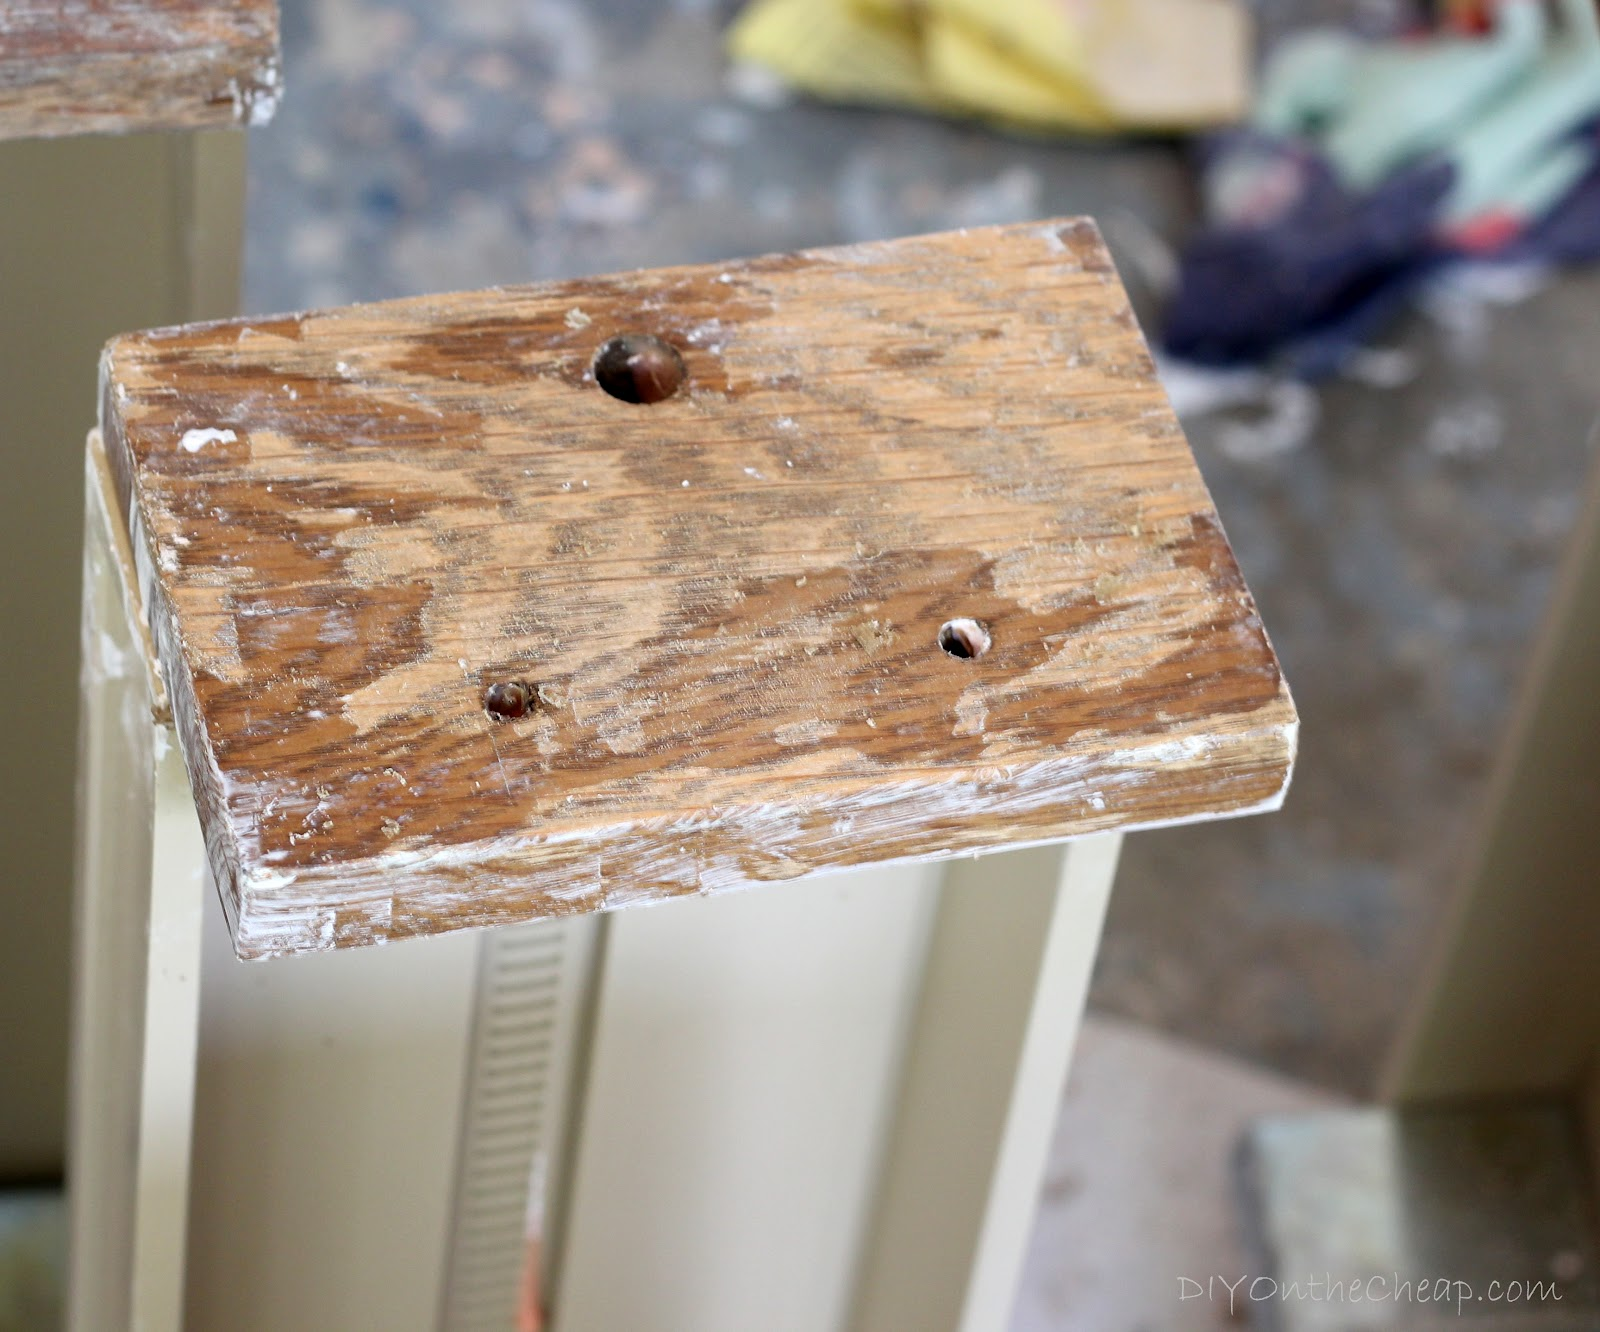 Can You Still Stain Wood After Using Paint Stripper